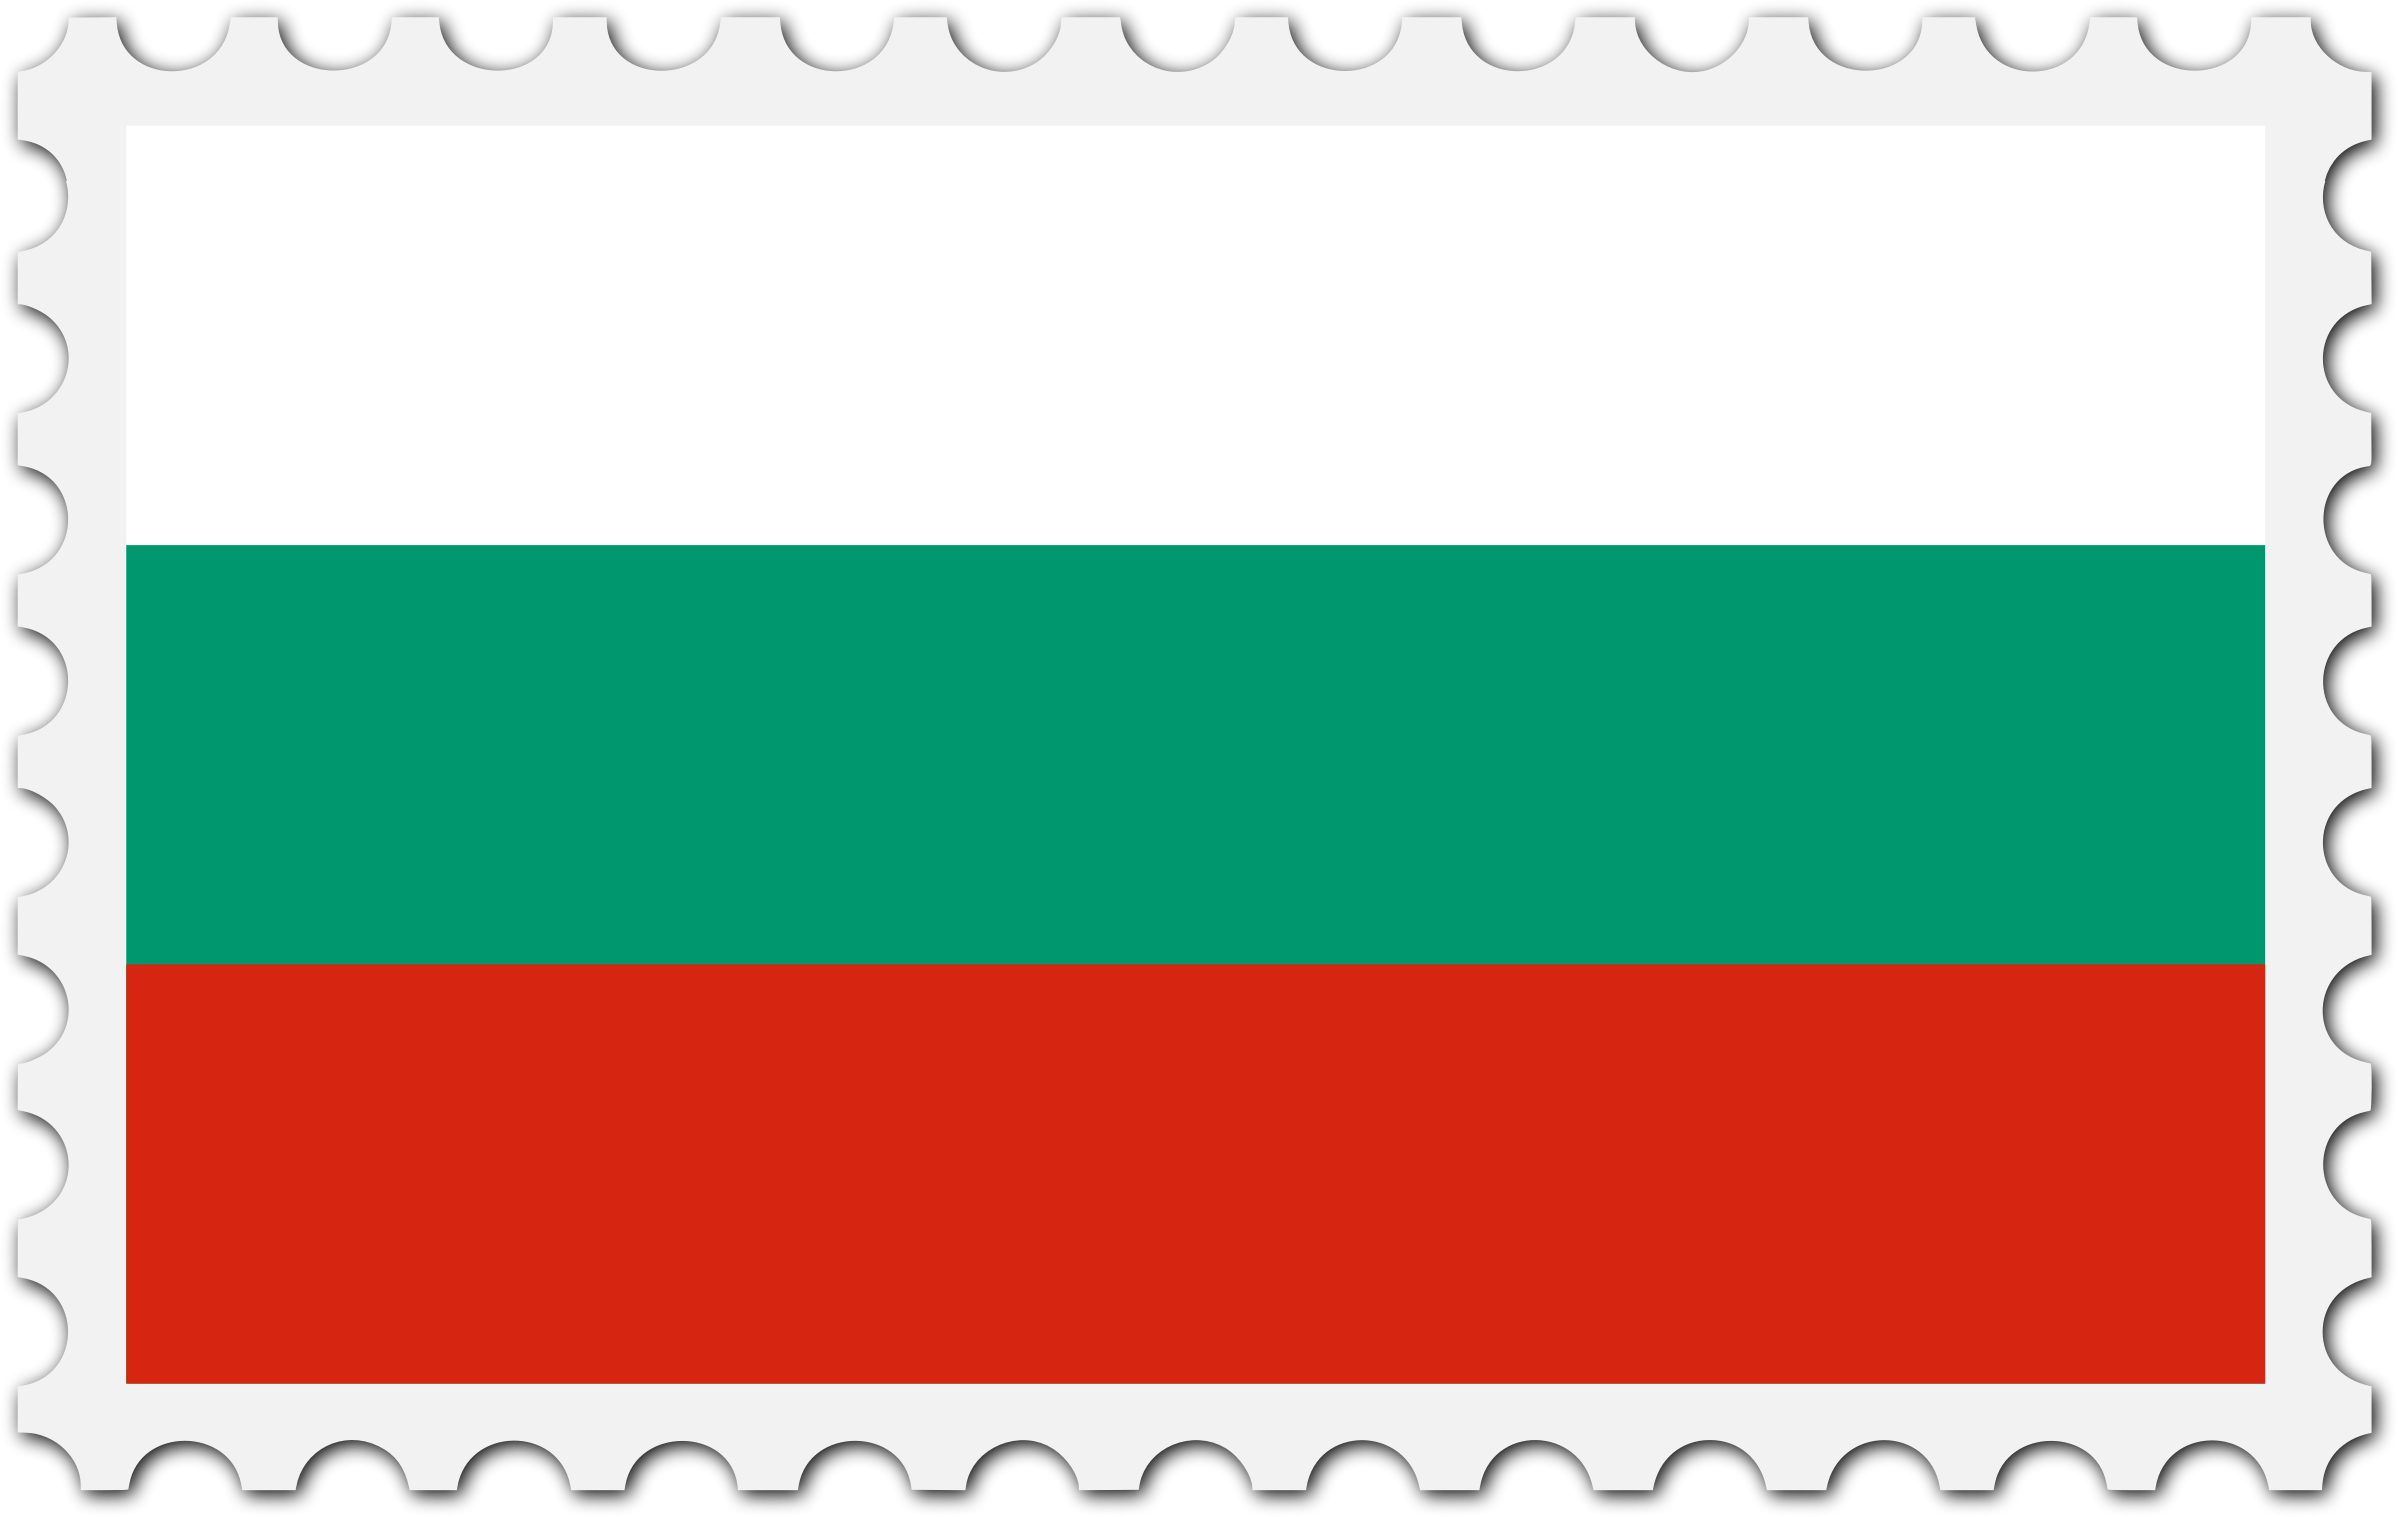 Bulgaria flag stamp by Firkin